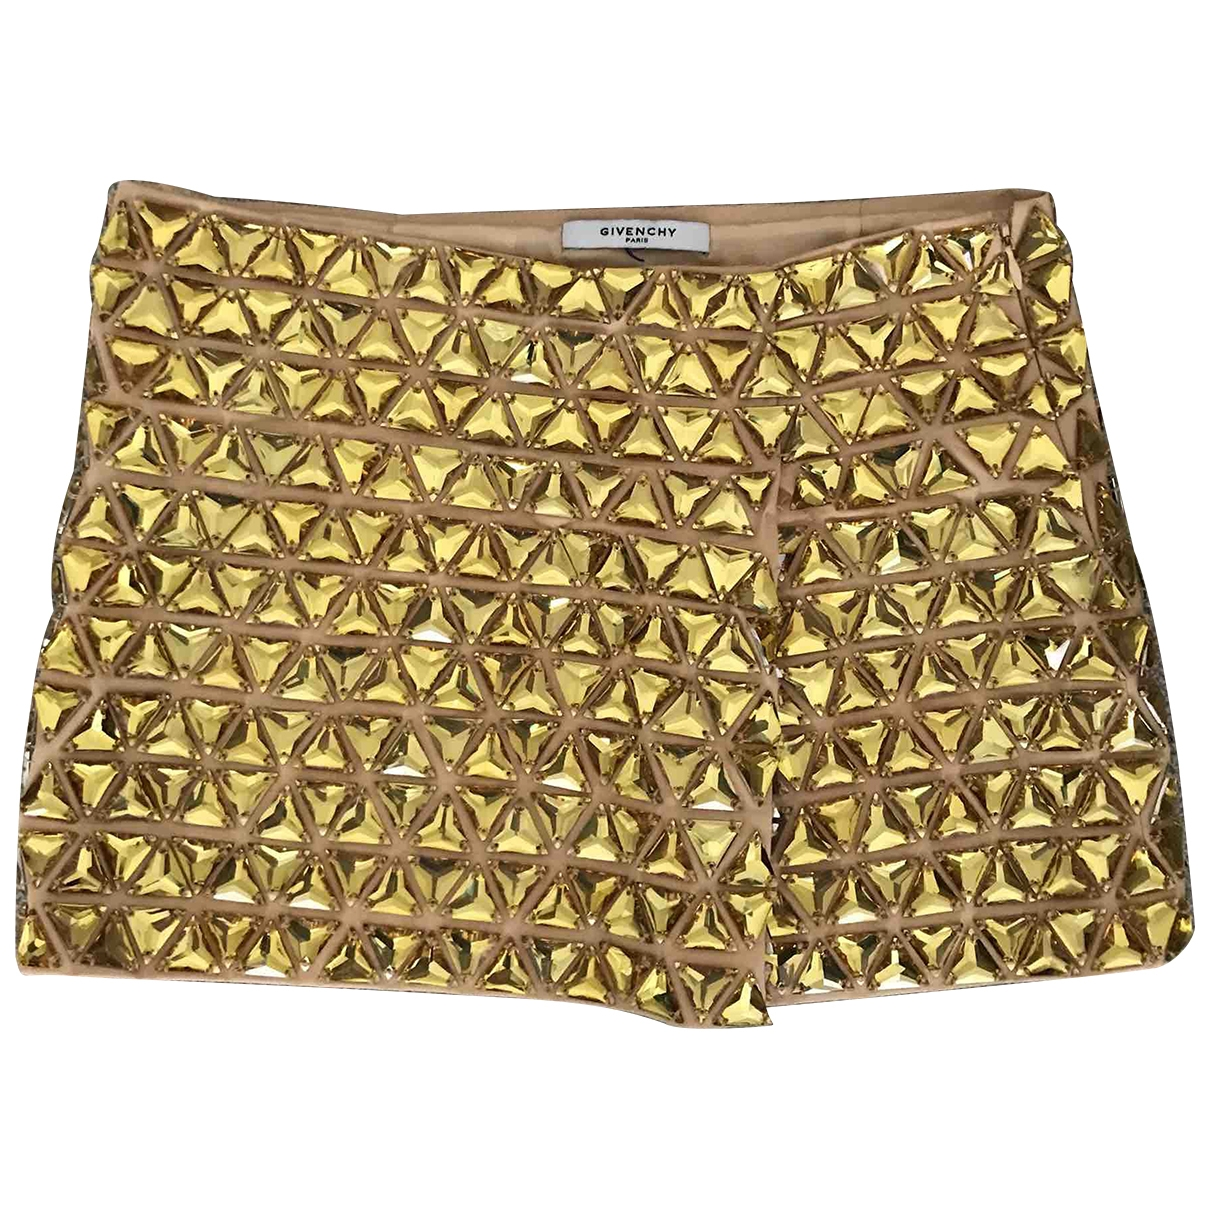 Givenchy \N Gold Cotton skirt for Women 36 FR